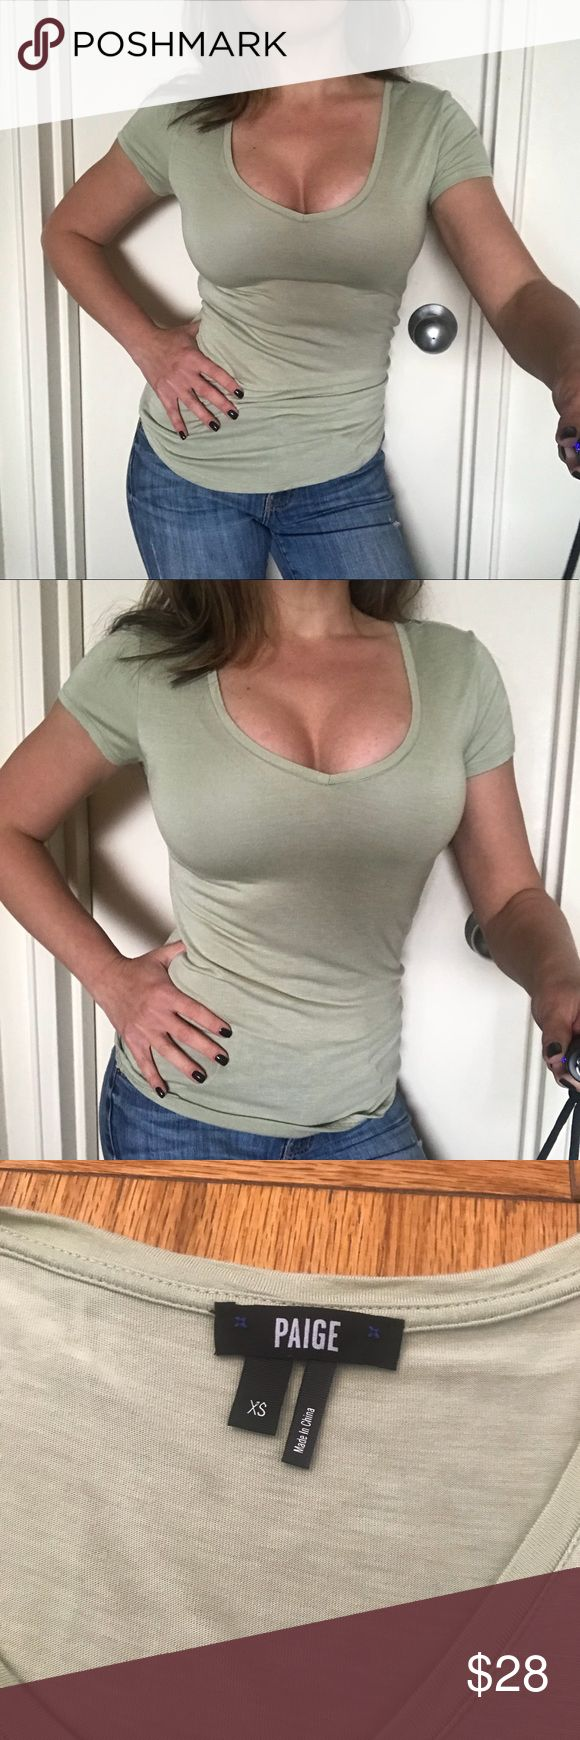 New Paige Premium Denim Women's T Shirt Top XS NWOT  Paige Premium Denim  Women's V Neck Tee Shirt  Size XS 100% viscose  Super soft and light material. Perfect for spring and summer.  Color: light green PAIGE Tops Tees - Short Sleeve